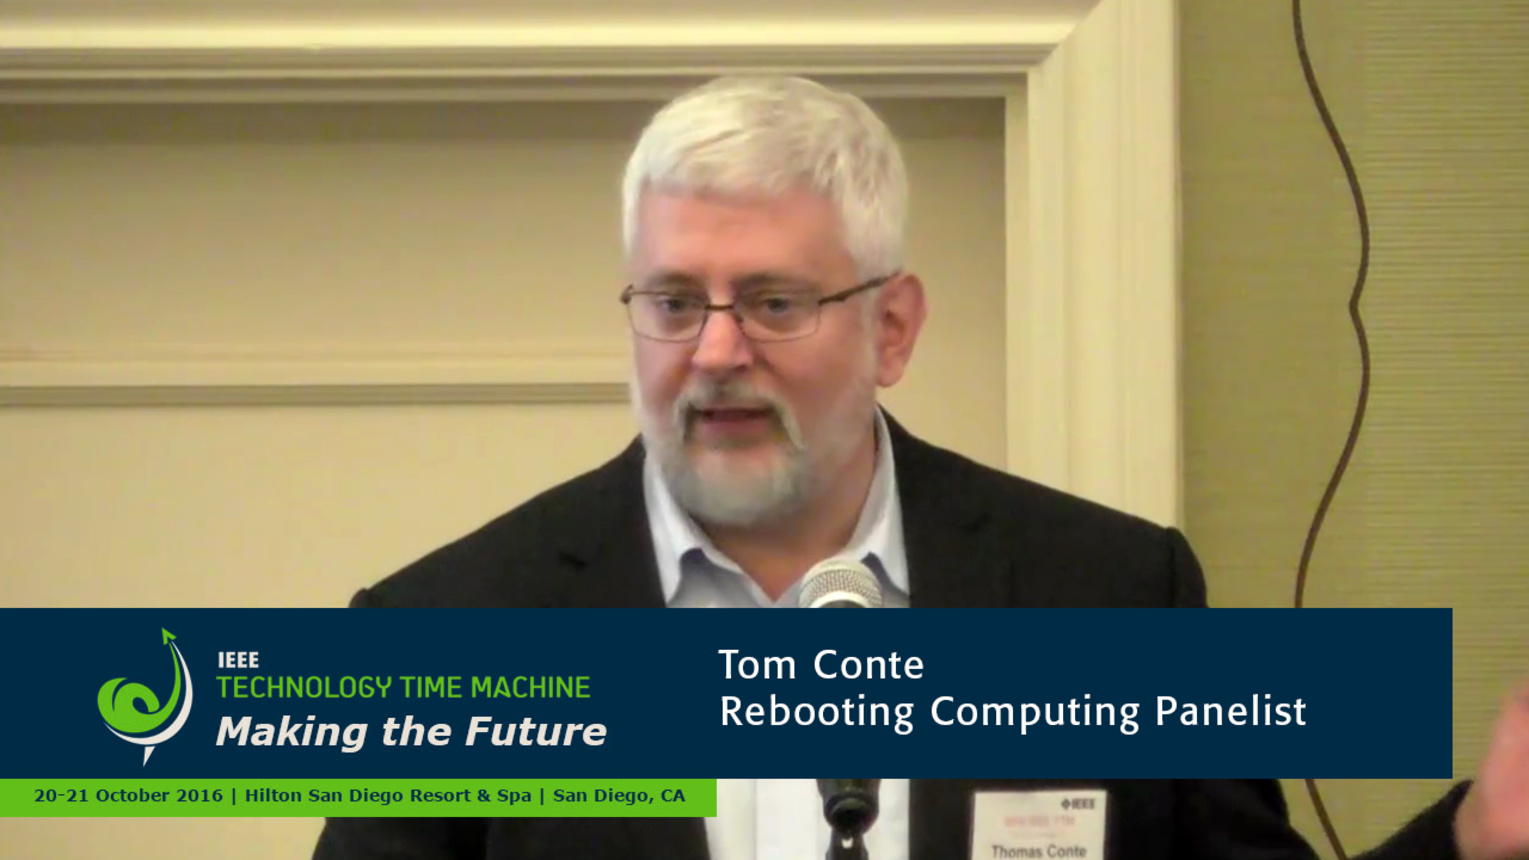 Rebooting Computing Panel - Tom Conte: 2016 Technology Time Machine